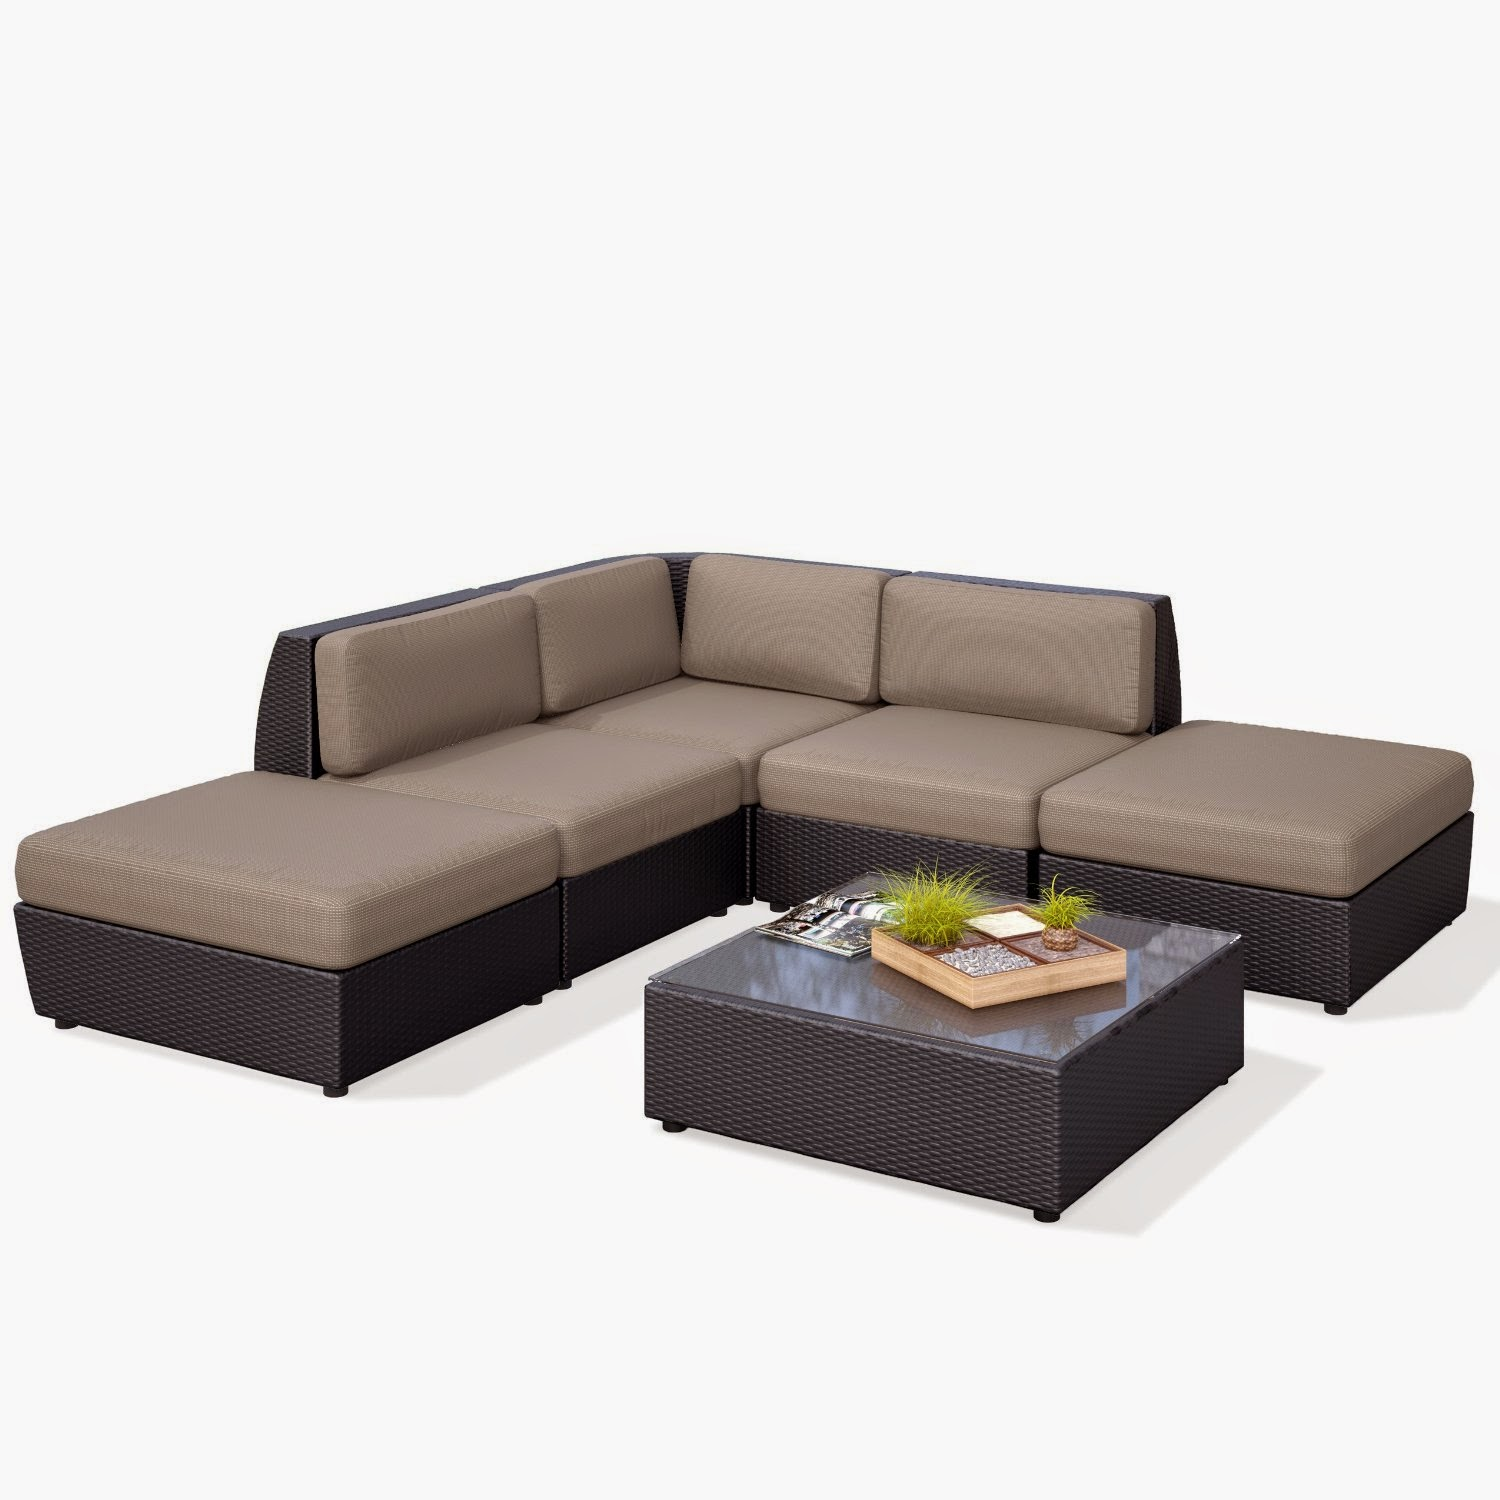 Curved Sofa Website Reviews: Curved Sectional Sofa With Chaise